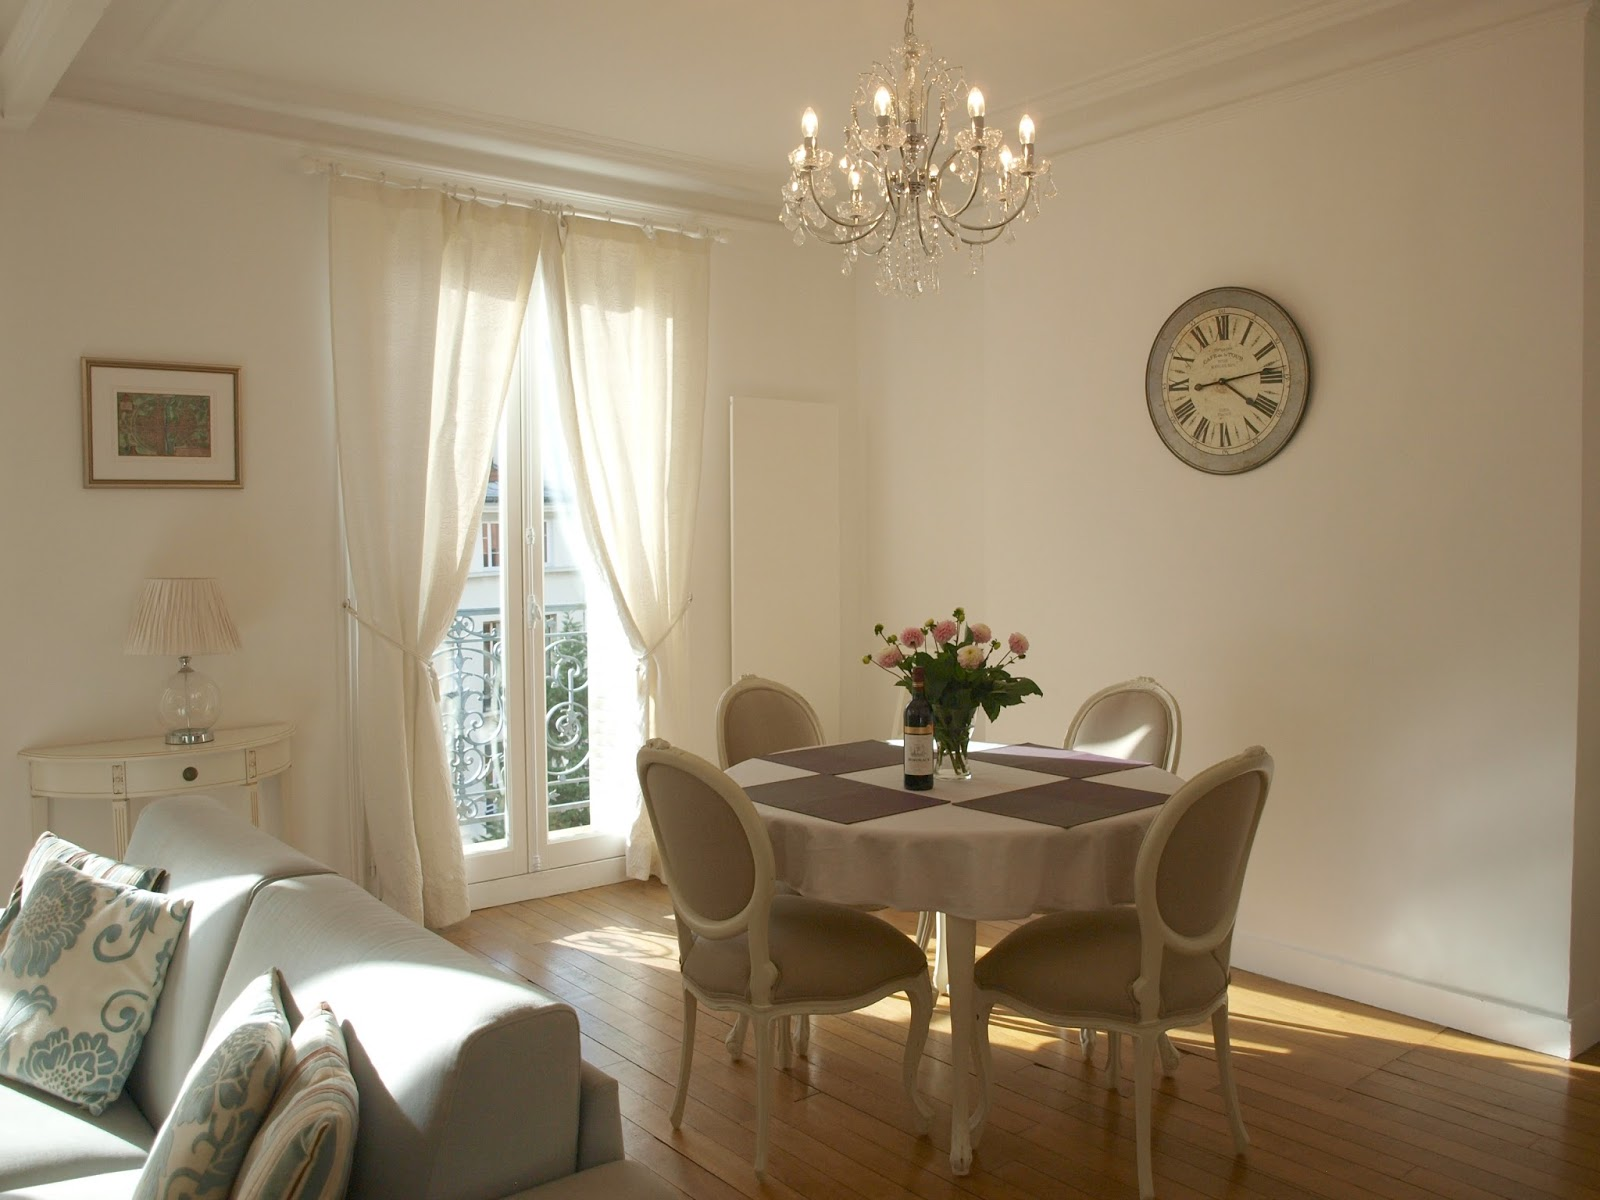 Paris apartment dining room with oval back chairs - Hello Lovely Studio